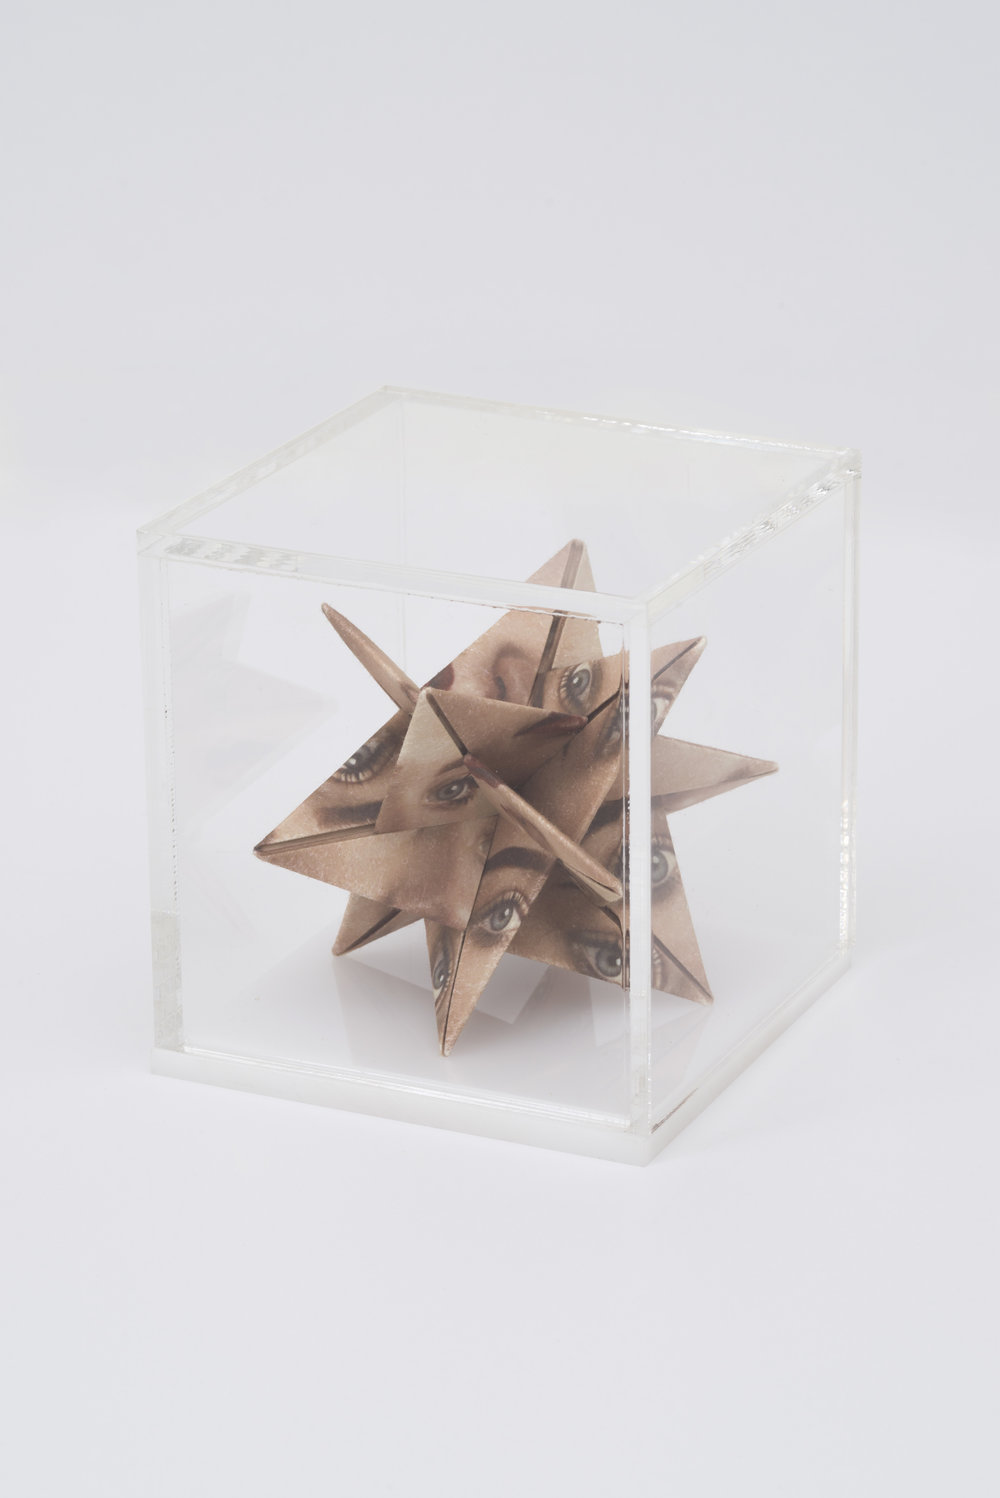 Alma Haser,  Prototype No. 39 (Grace) , 2016  Digital pigment print with folded digital pigment print sculpture, plexiglass box, 12 x 12 x 12 cm (approx. 5 x 5 x 5 in), edition of 5   Inquire